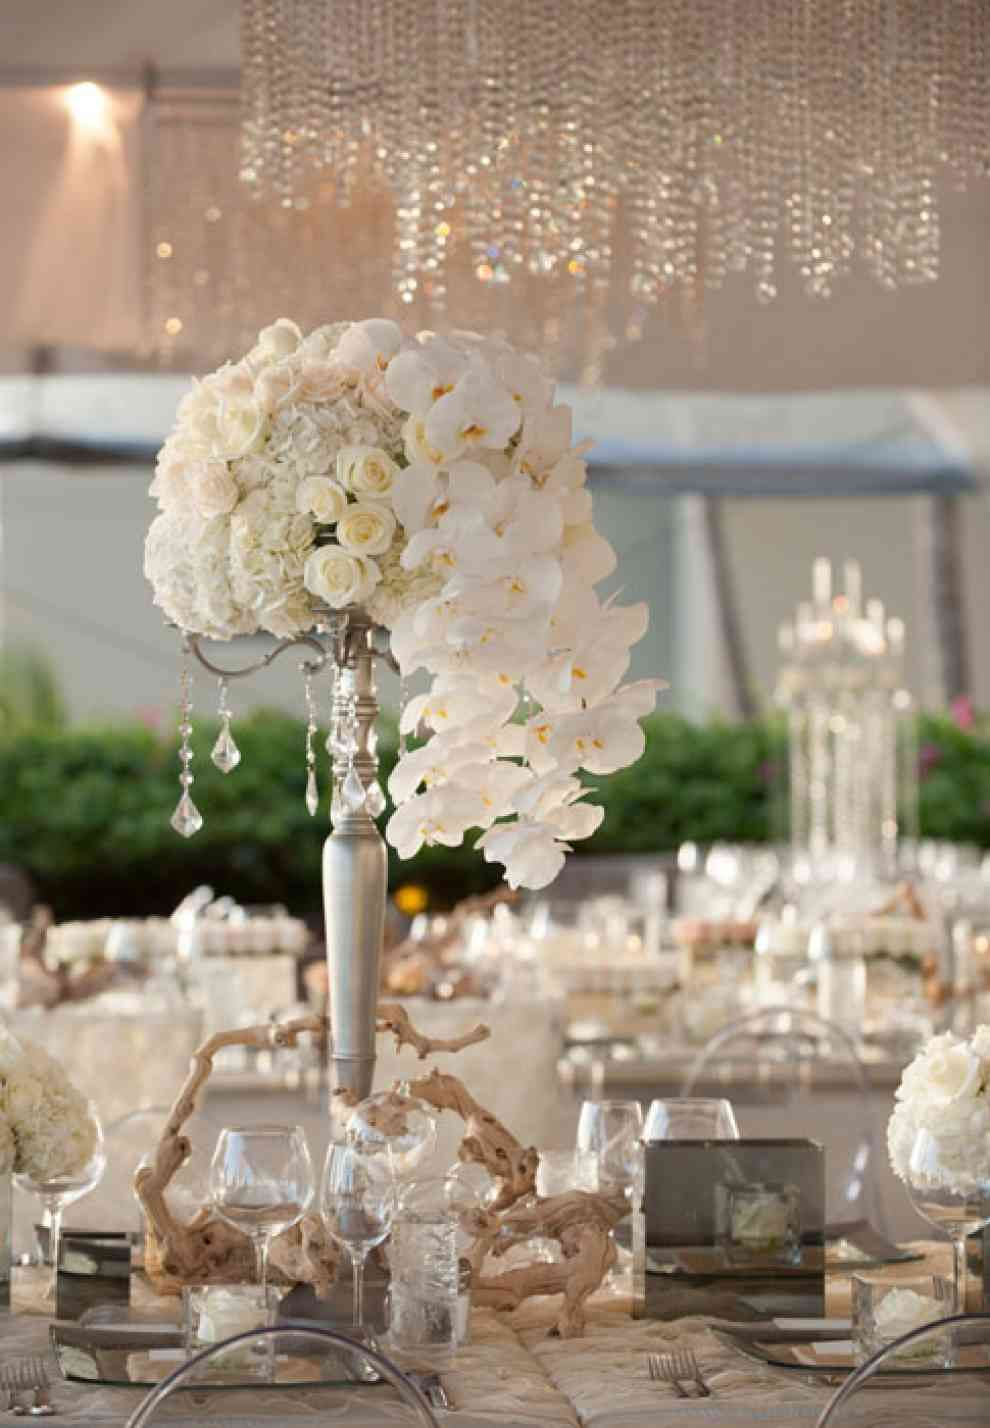 Awe-Inspiring Unique Wedding Centerpiece Ideas – Part 2